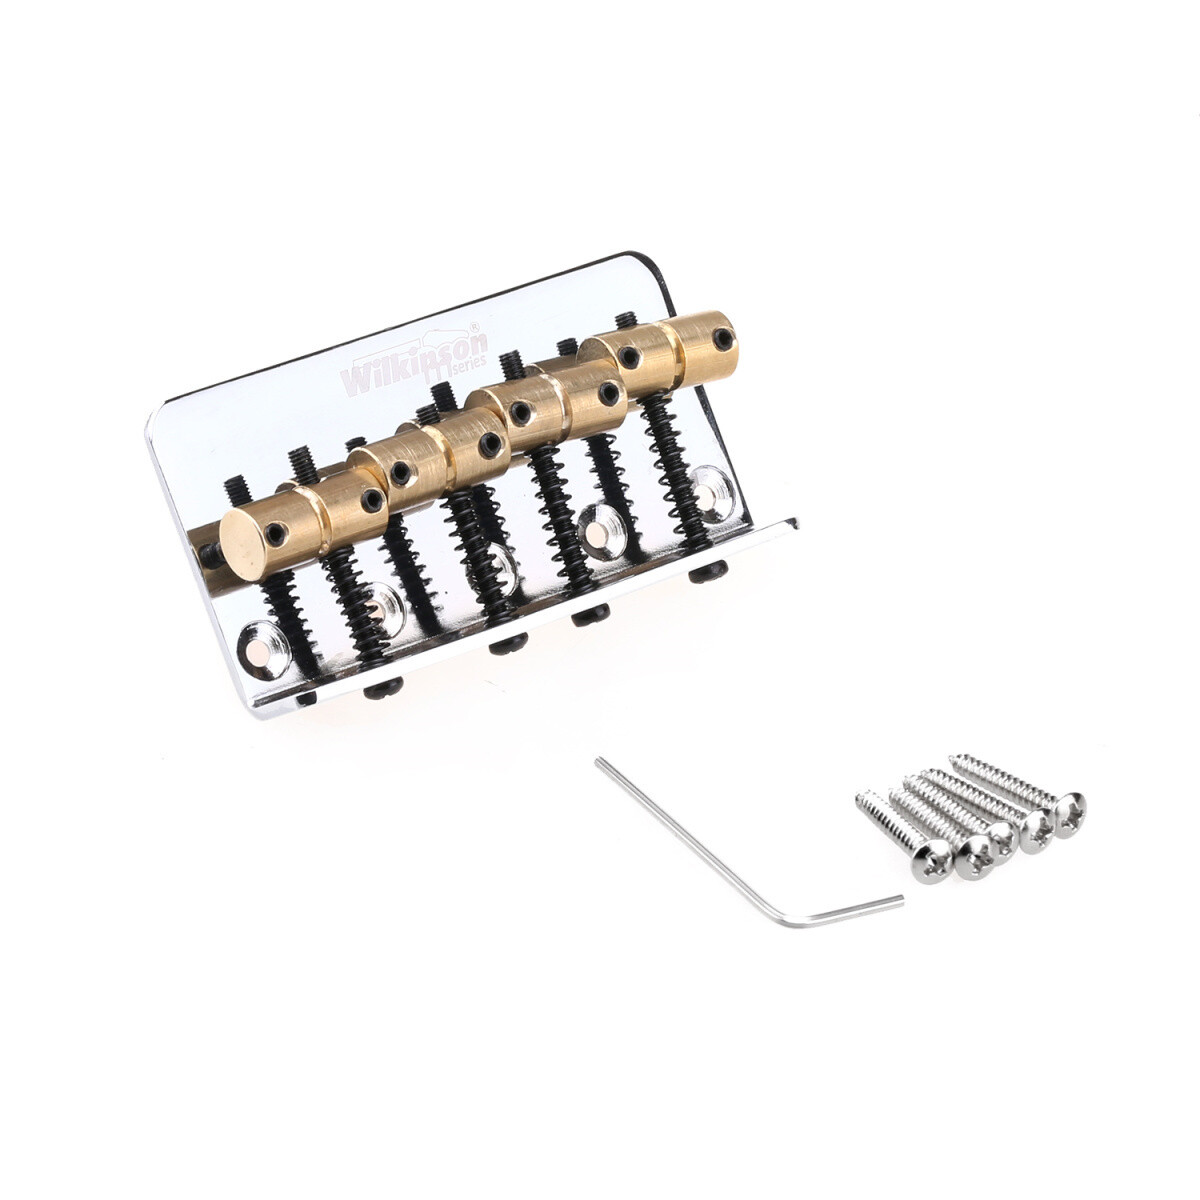 Wilkinson 57mm(2-1/4 inch) String Spacing 4-String Fixed Bass Bridge Brass Saddles for Precision Bass and Jazz Bass, Chrome